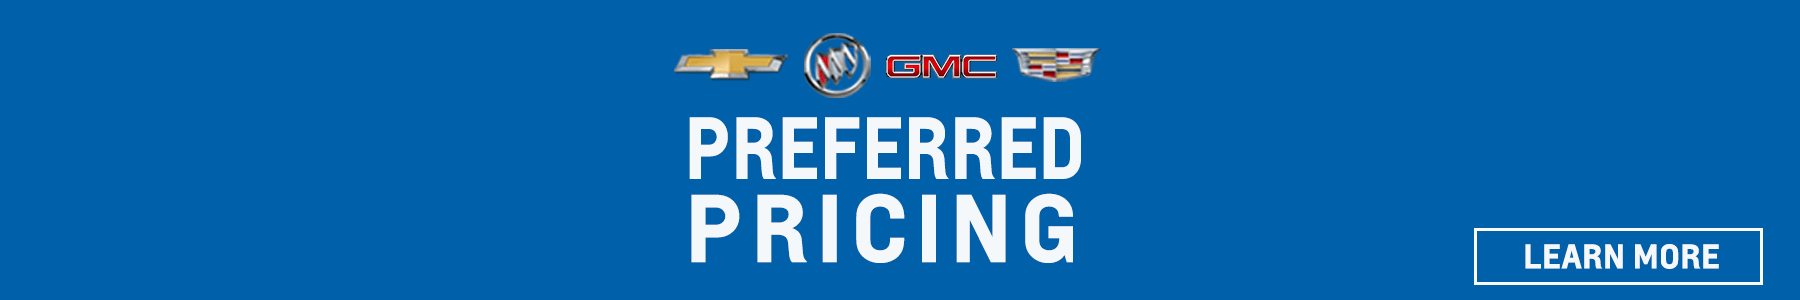 GM Preferred Pricing | Huron Motor Products